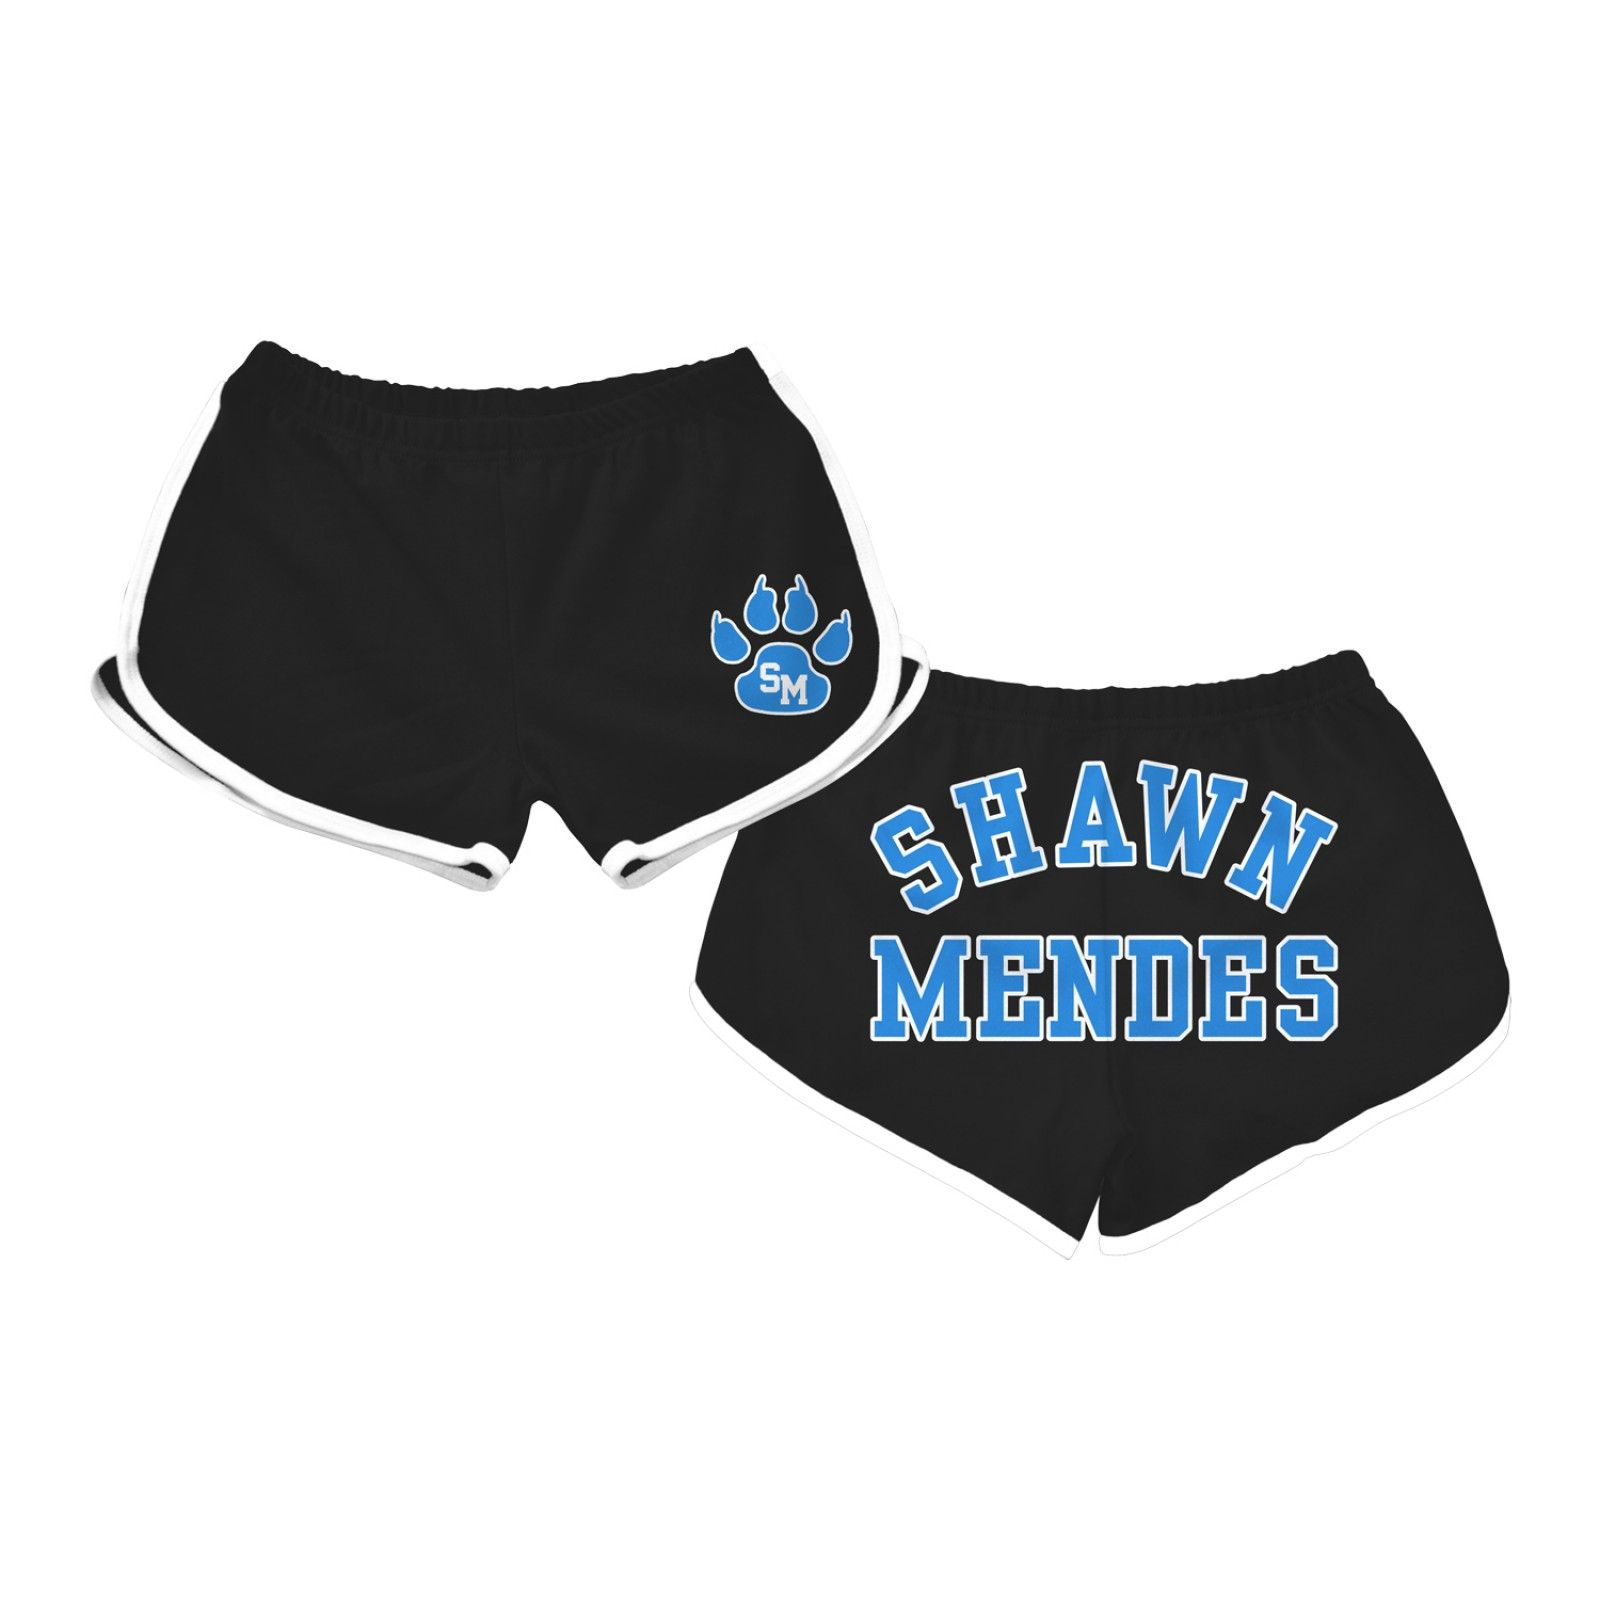 6d08a1369 SM Varsity Jogging Shorts | W A N T S in 2019 | Shawn mendes, Shawn ...